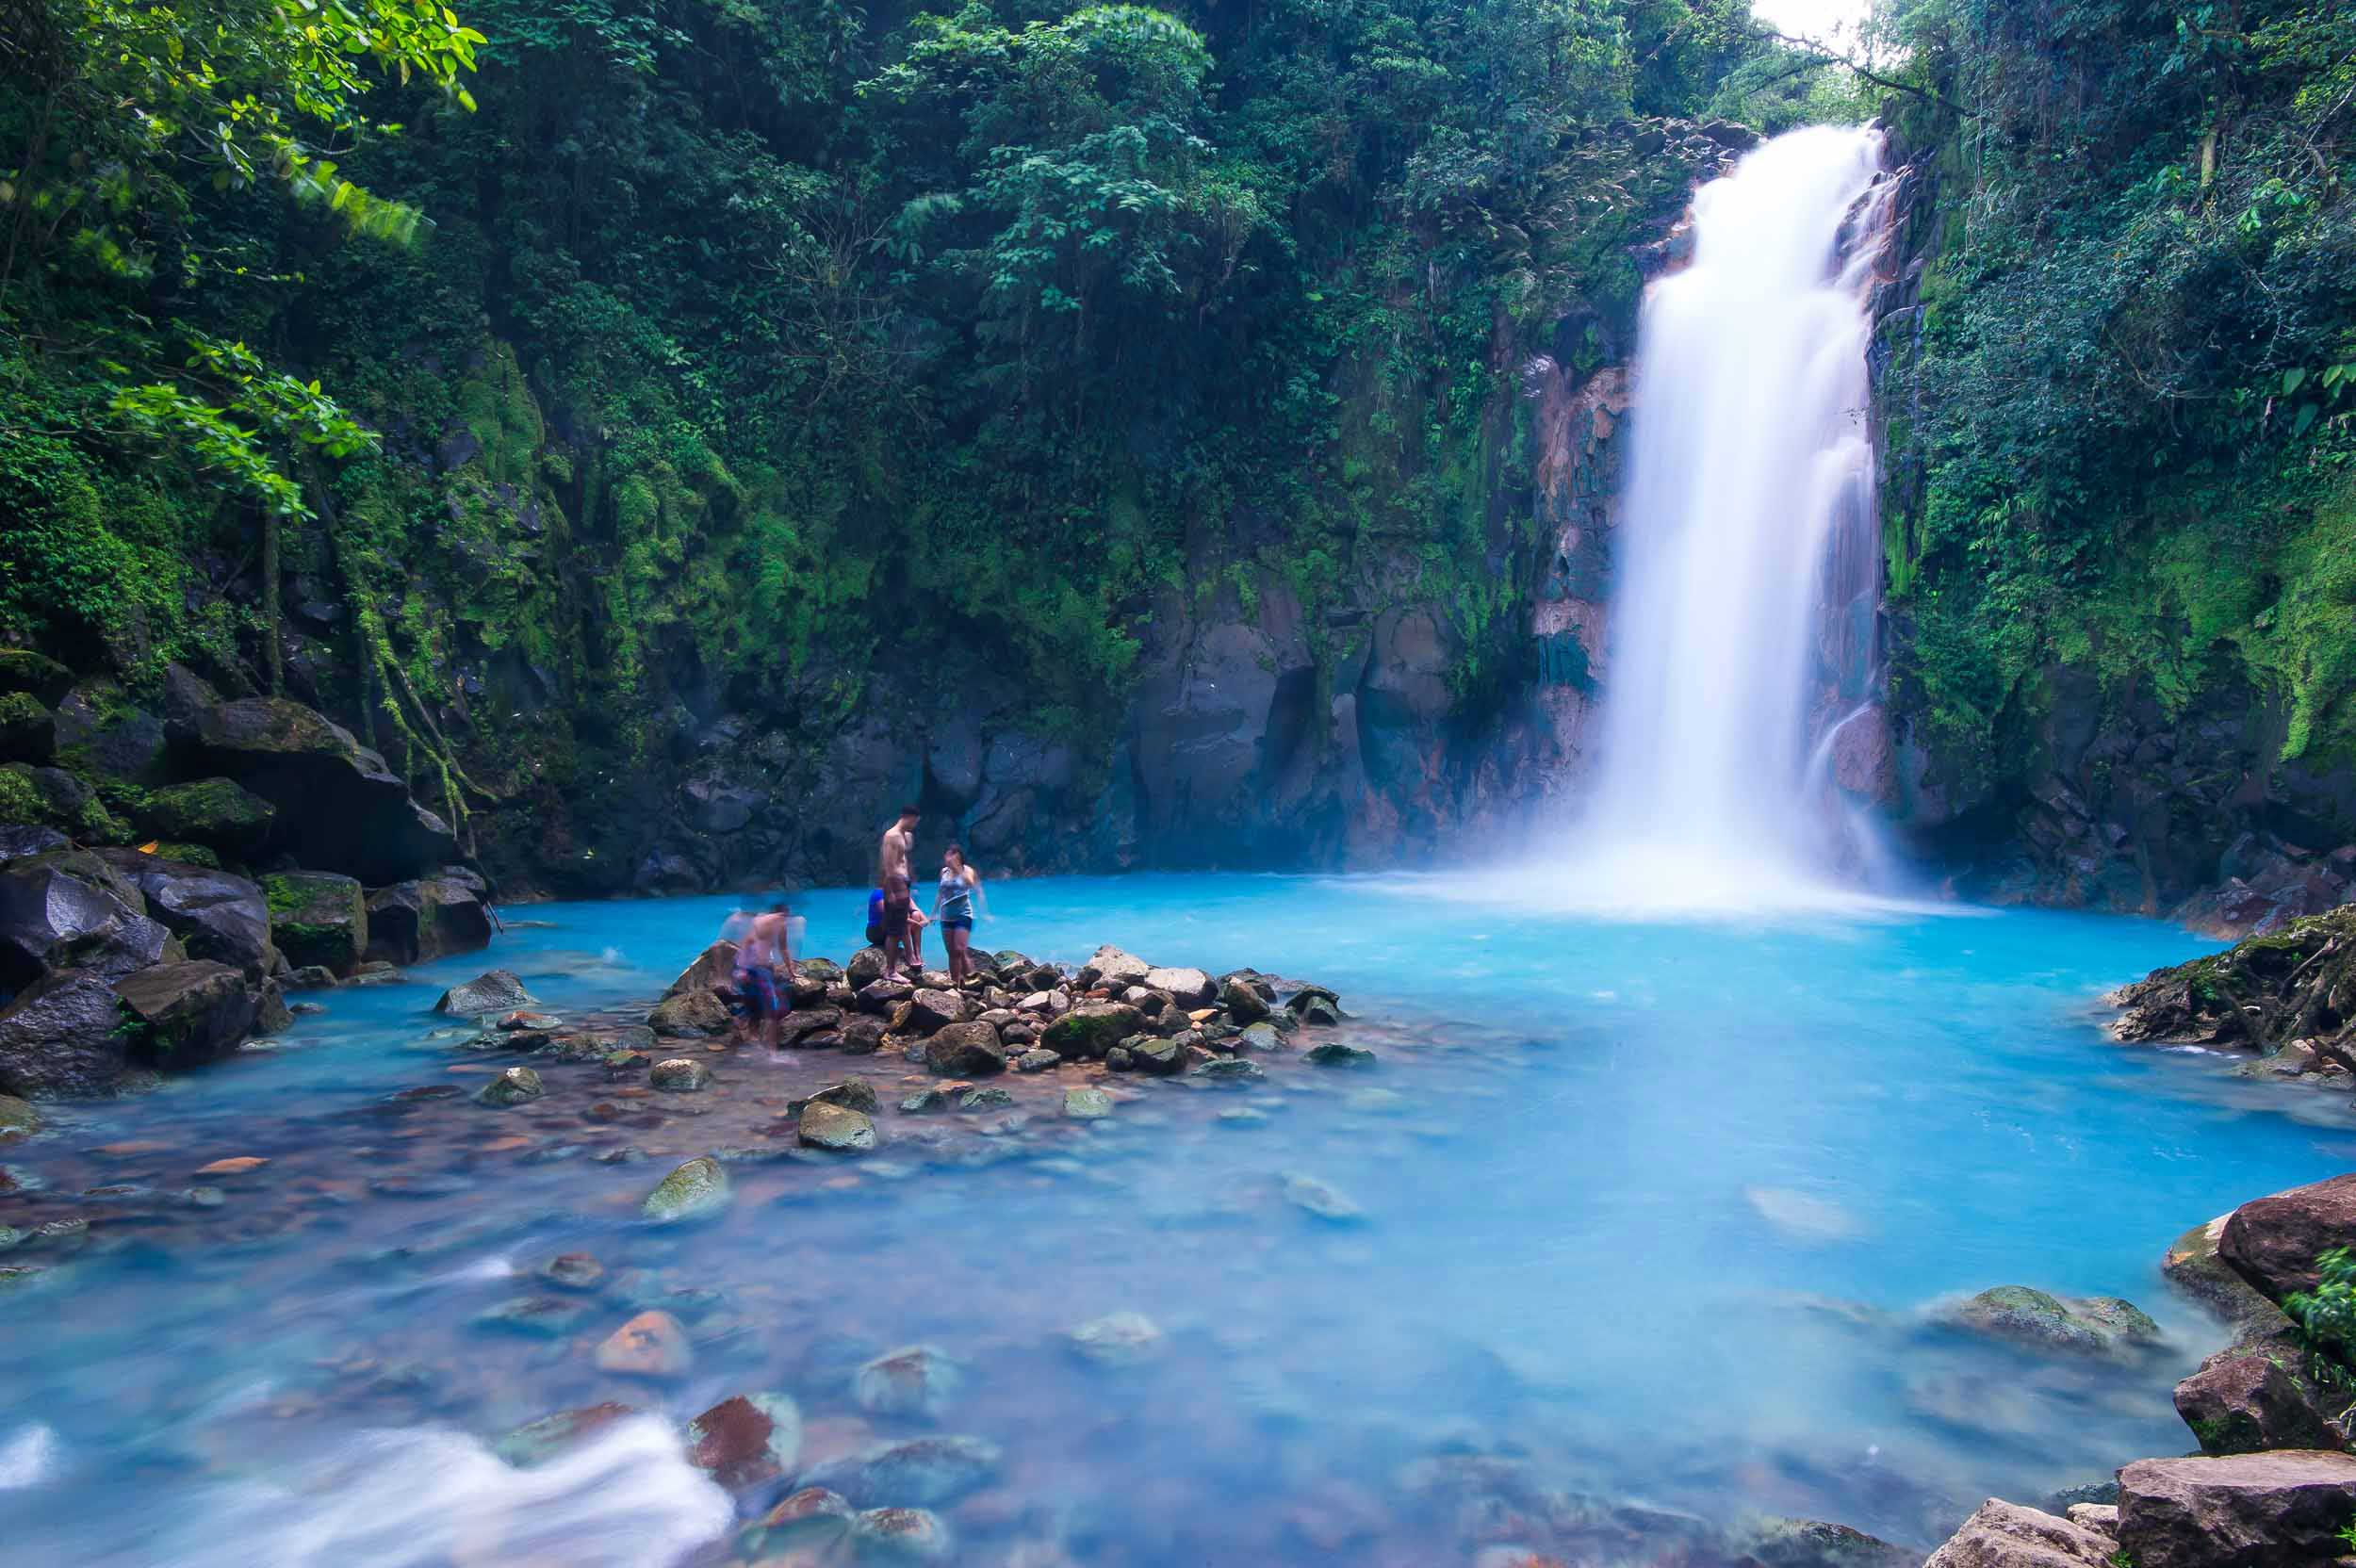 A waterfall cascading into a turquoise blue, rock strewn pool with four people on some rocks, Costa Rica